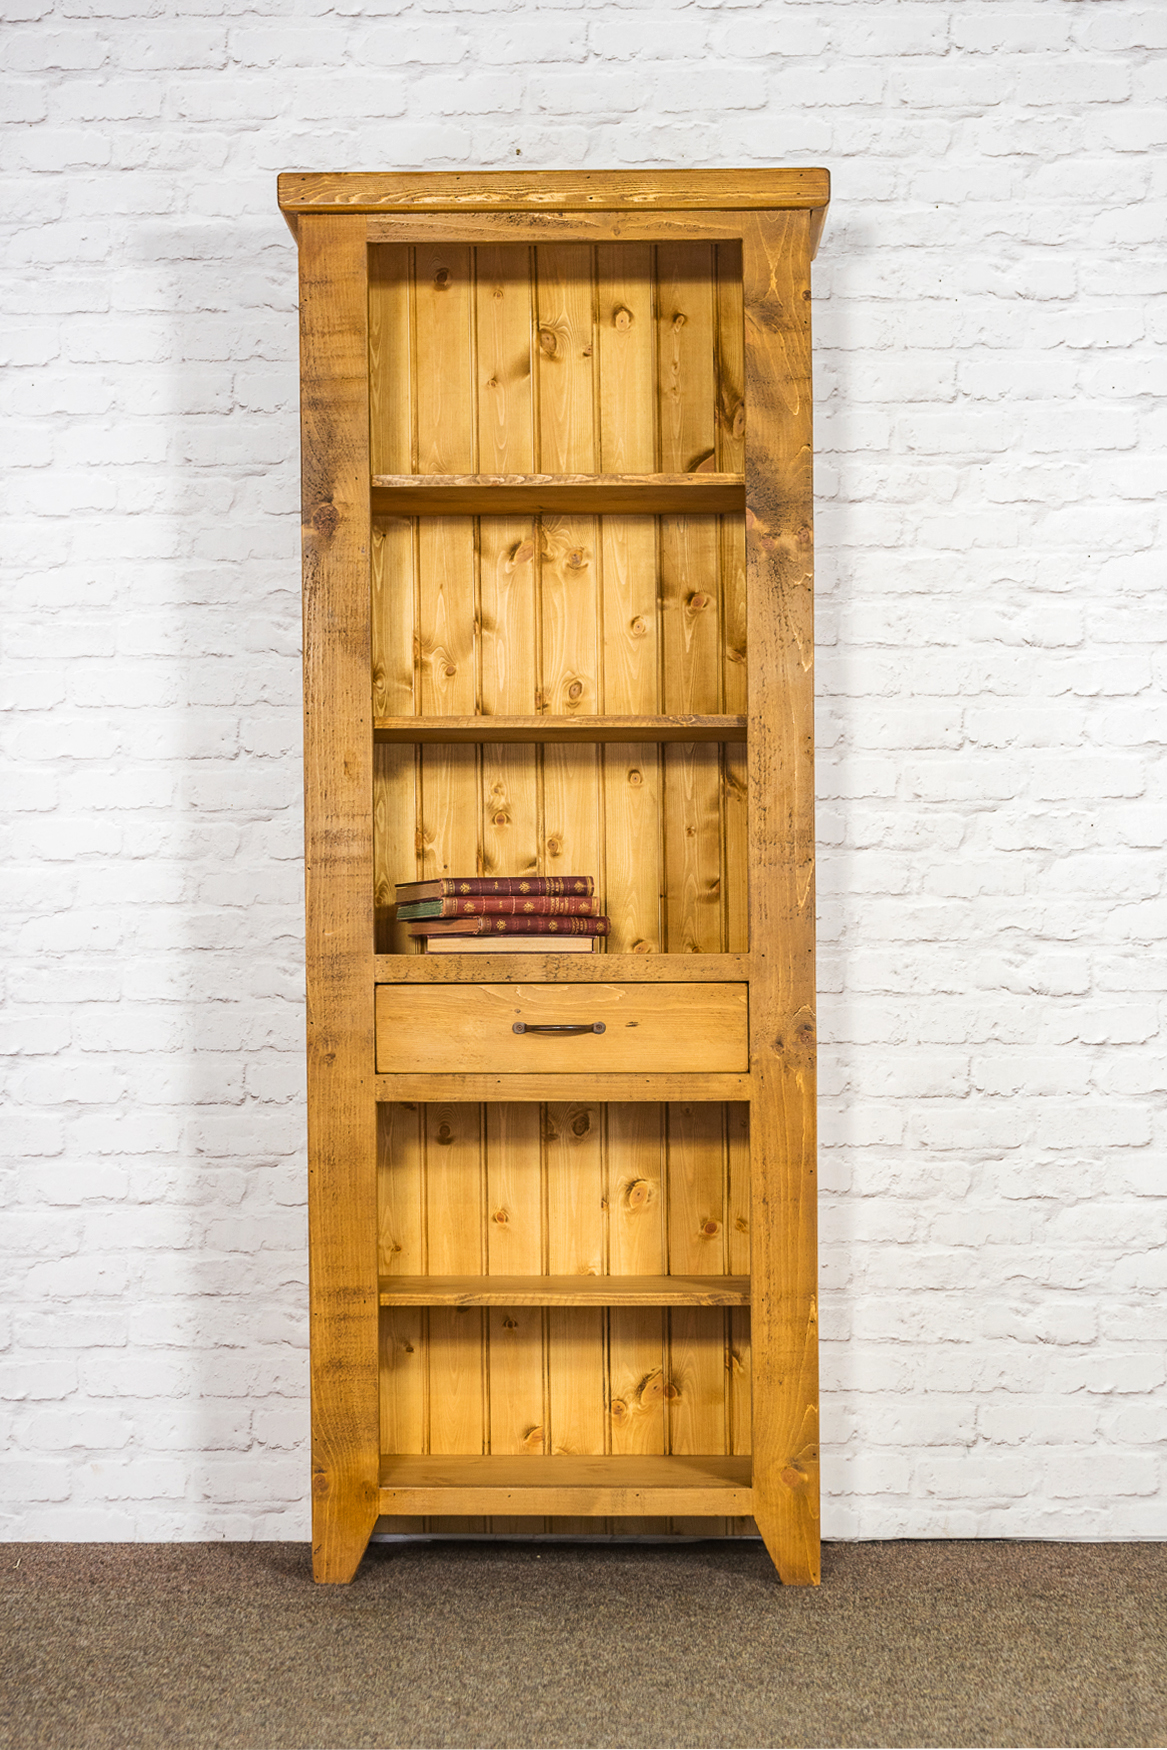 RUSTIC Tall Open Bookcase with 1 Drawer - 750mm Wide